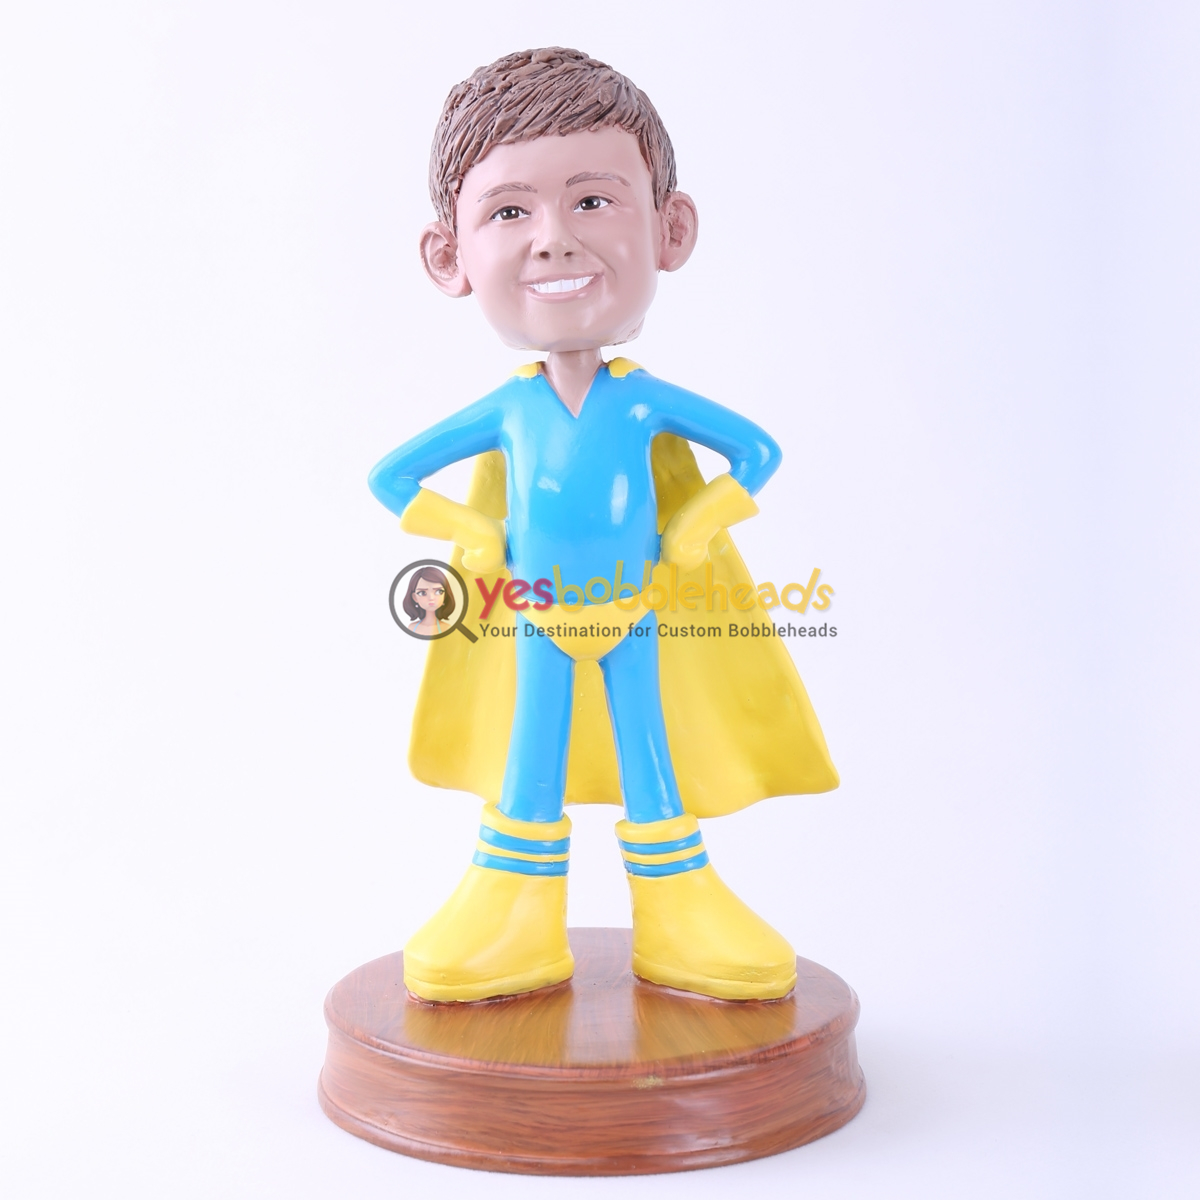 Picture of Custom Bobblehead Doll: Super Child with Yellow Cloak